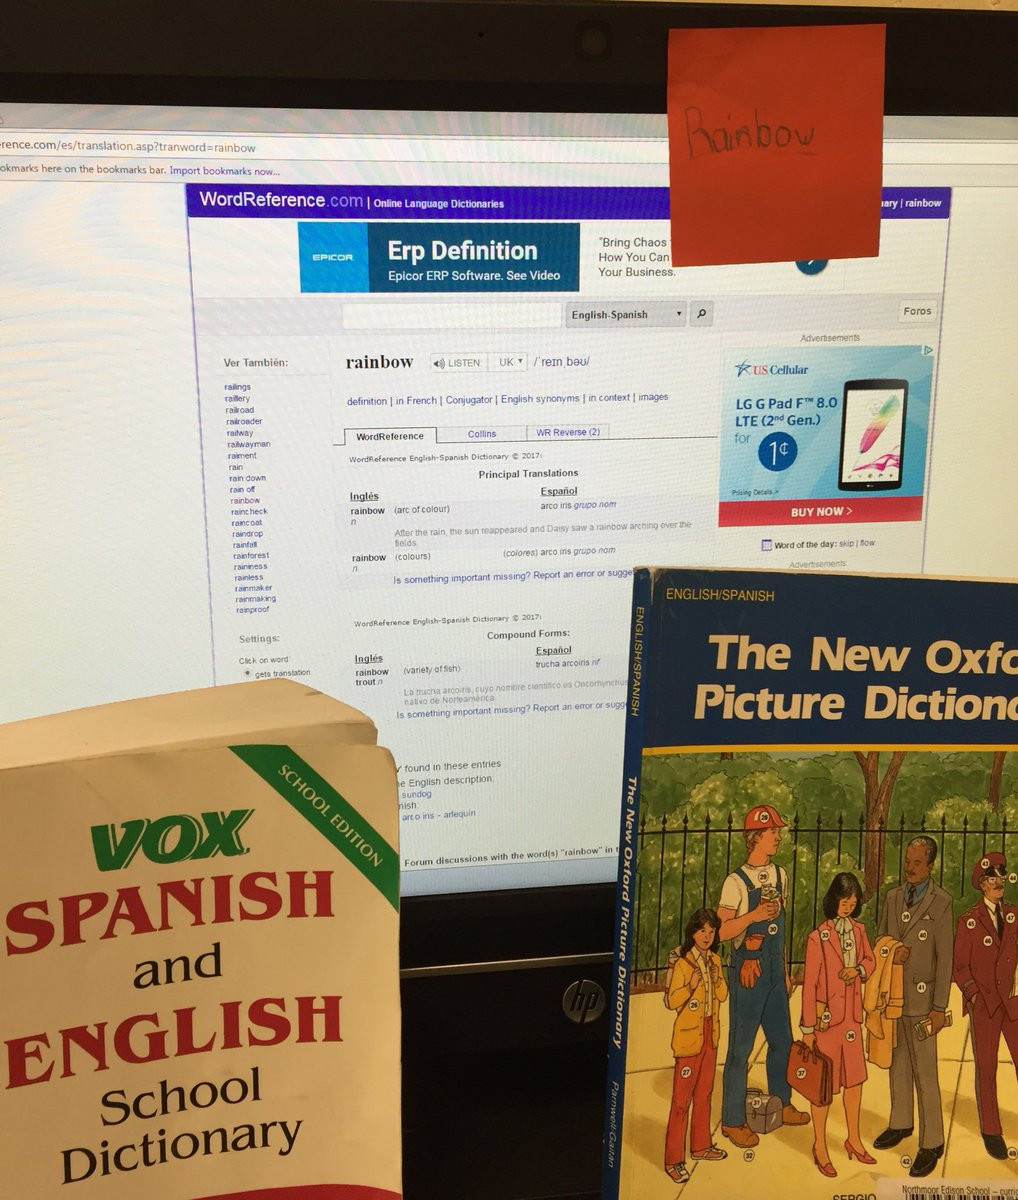 Bedroom english french dictionary wordreference com -  Wordreference But My Fourthgrade Students Voted The Picturedictionary As Their First Pick For Attacking Our Wonderwall Pic Twitter Com Qg0a80wh0k